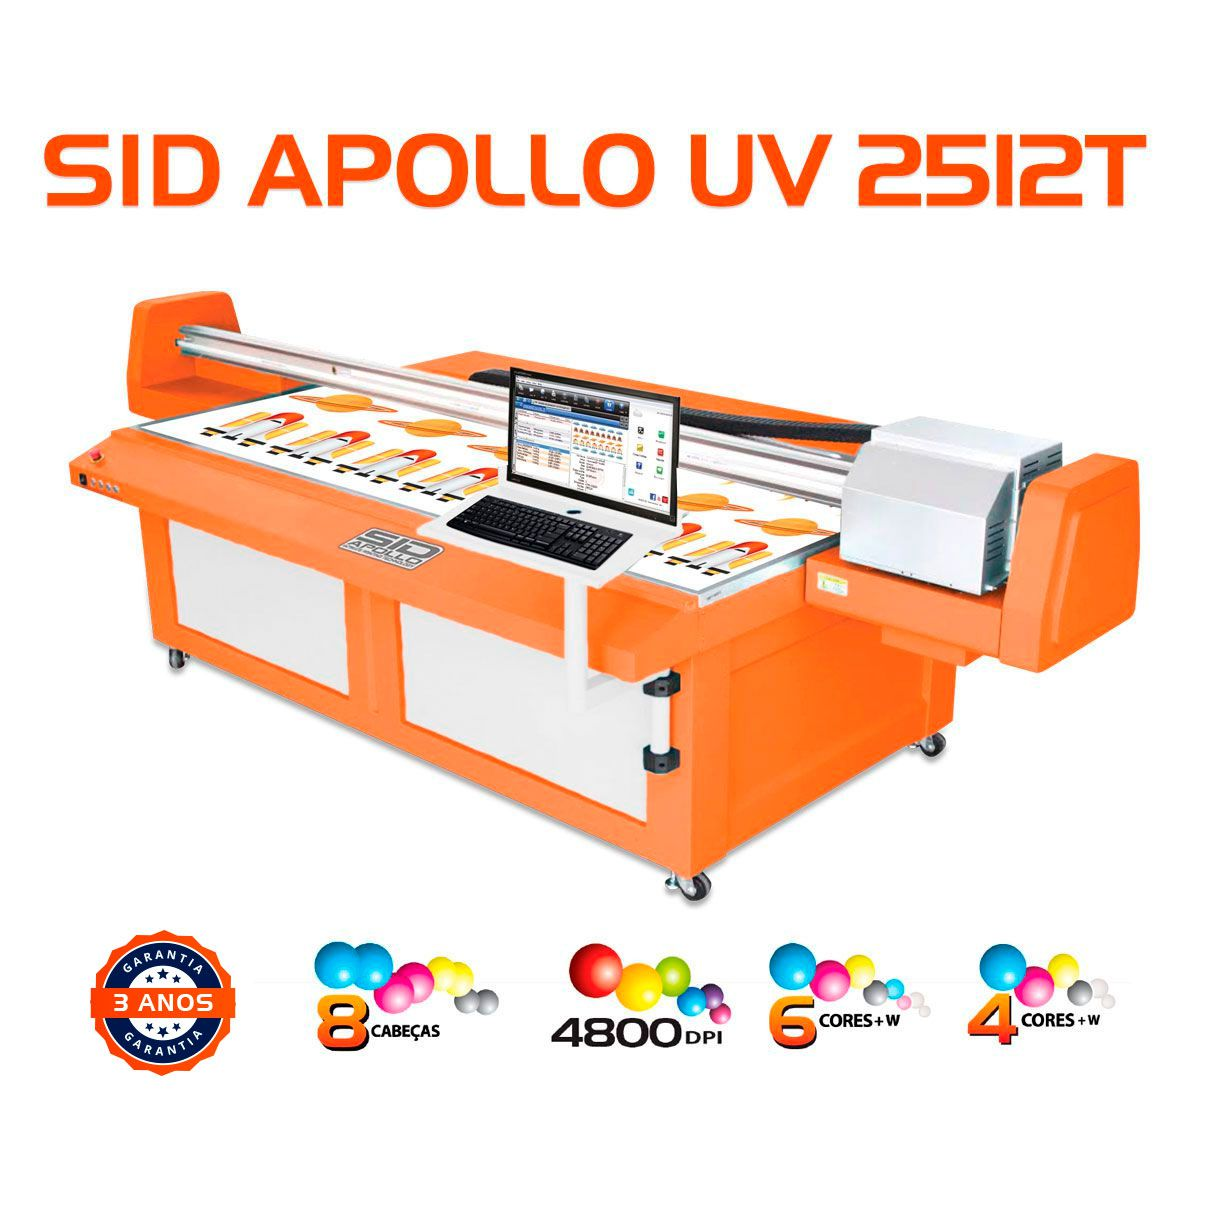 SID Apollo UV 2512T